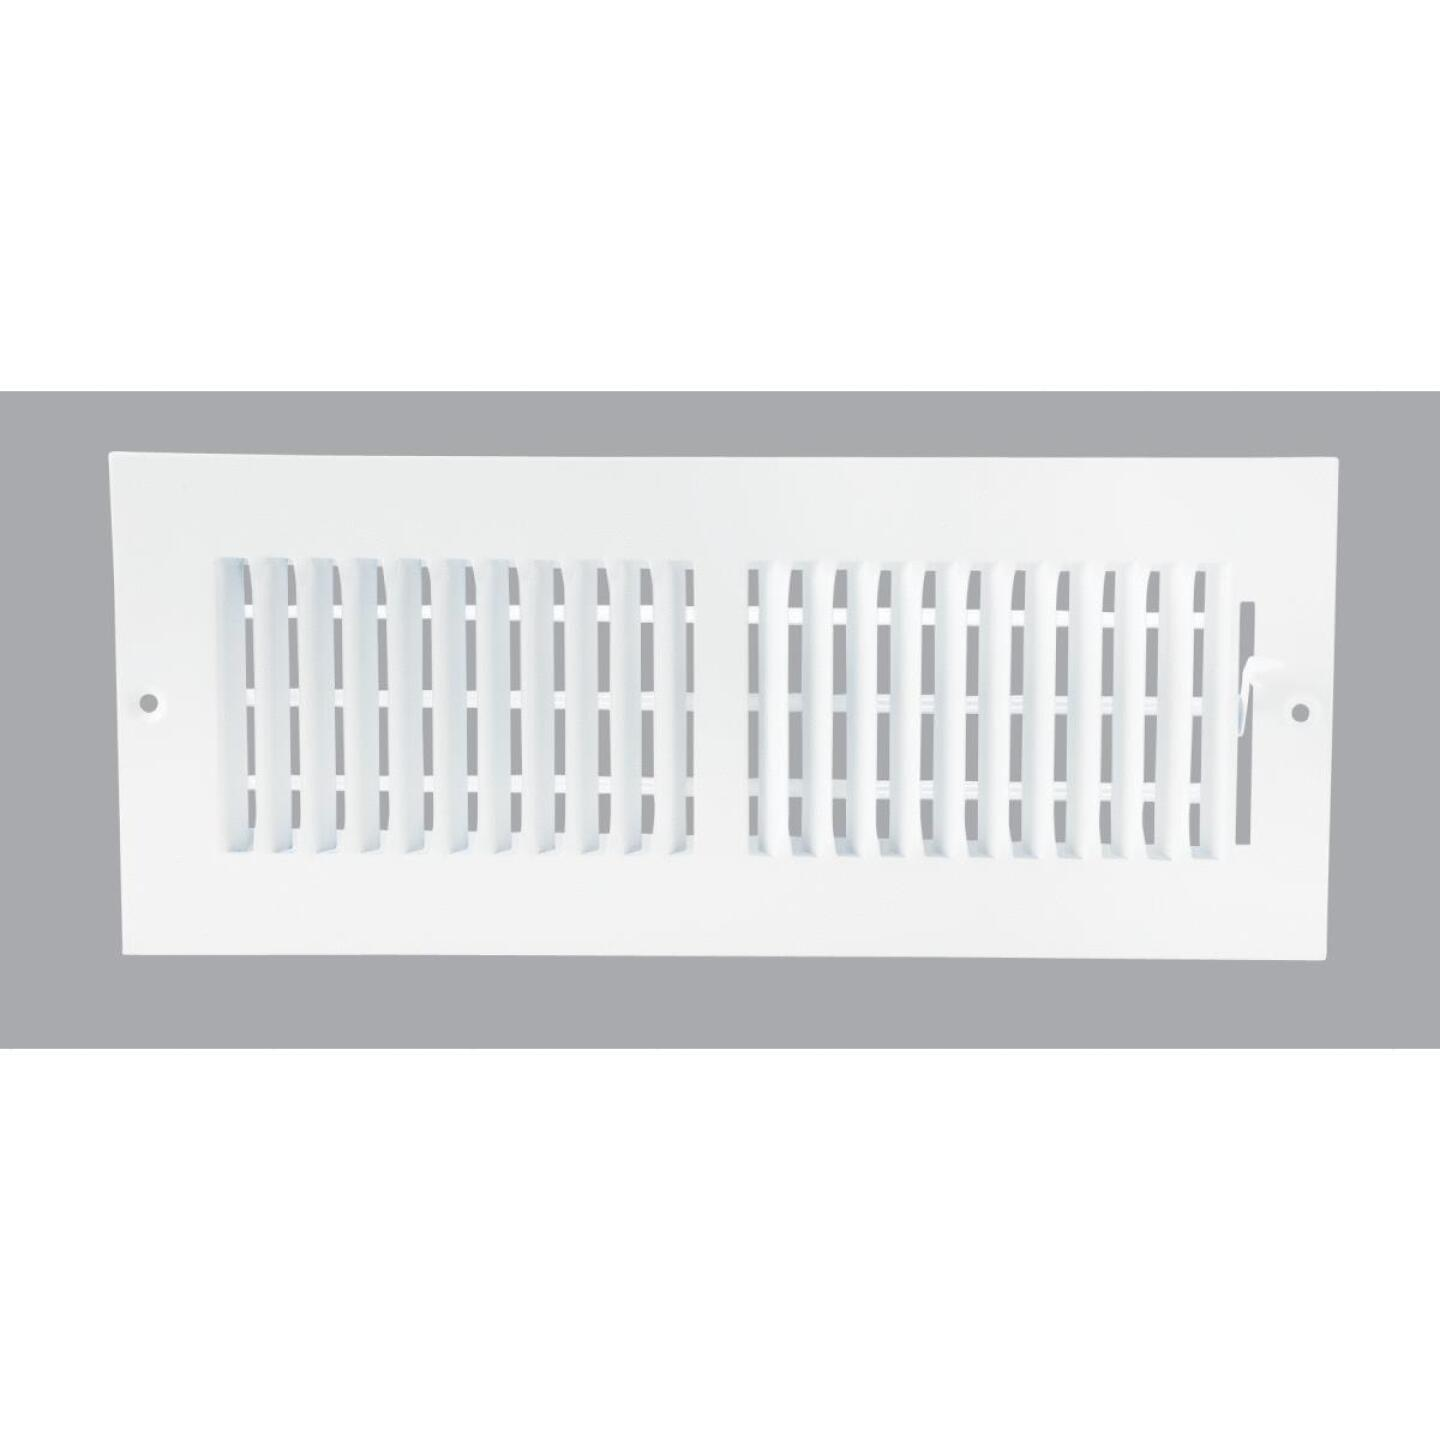 Home Impressions White Steel 5.75 In. Wall Register Image 1